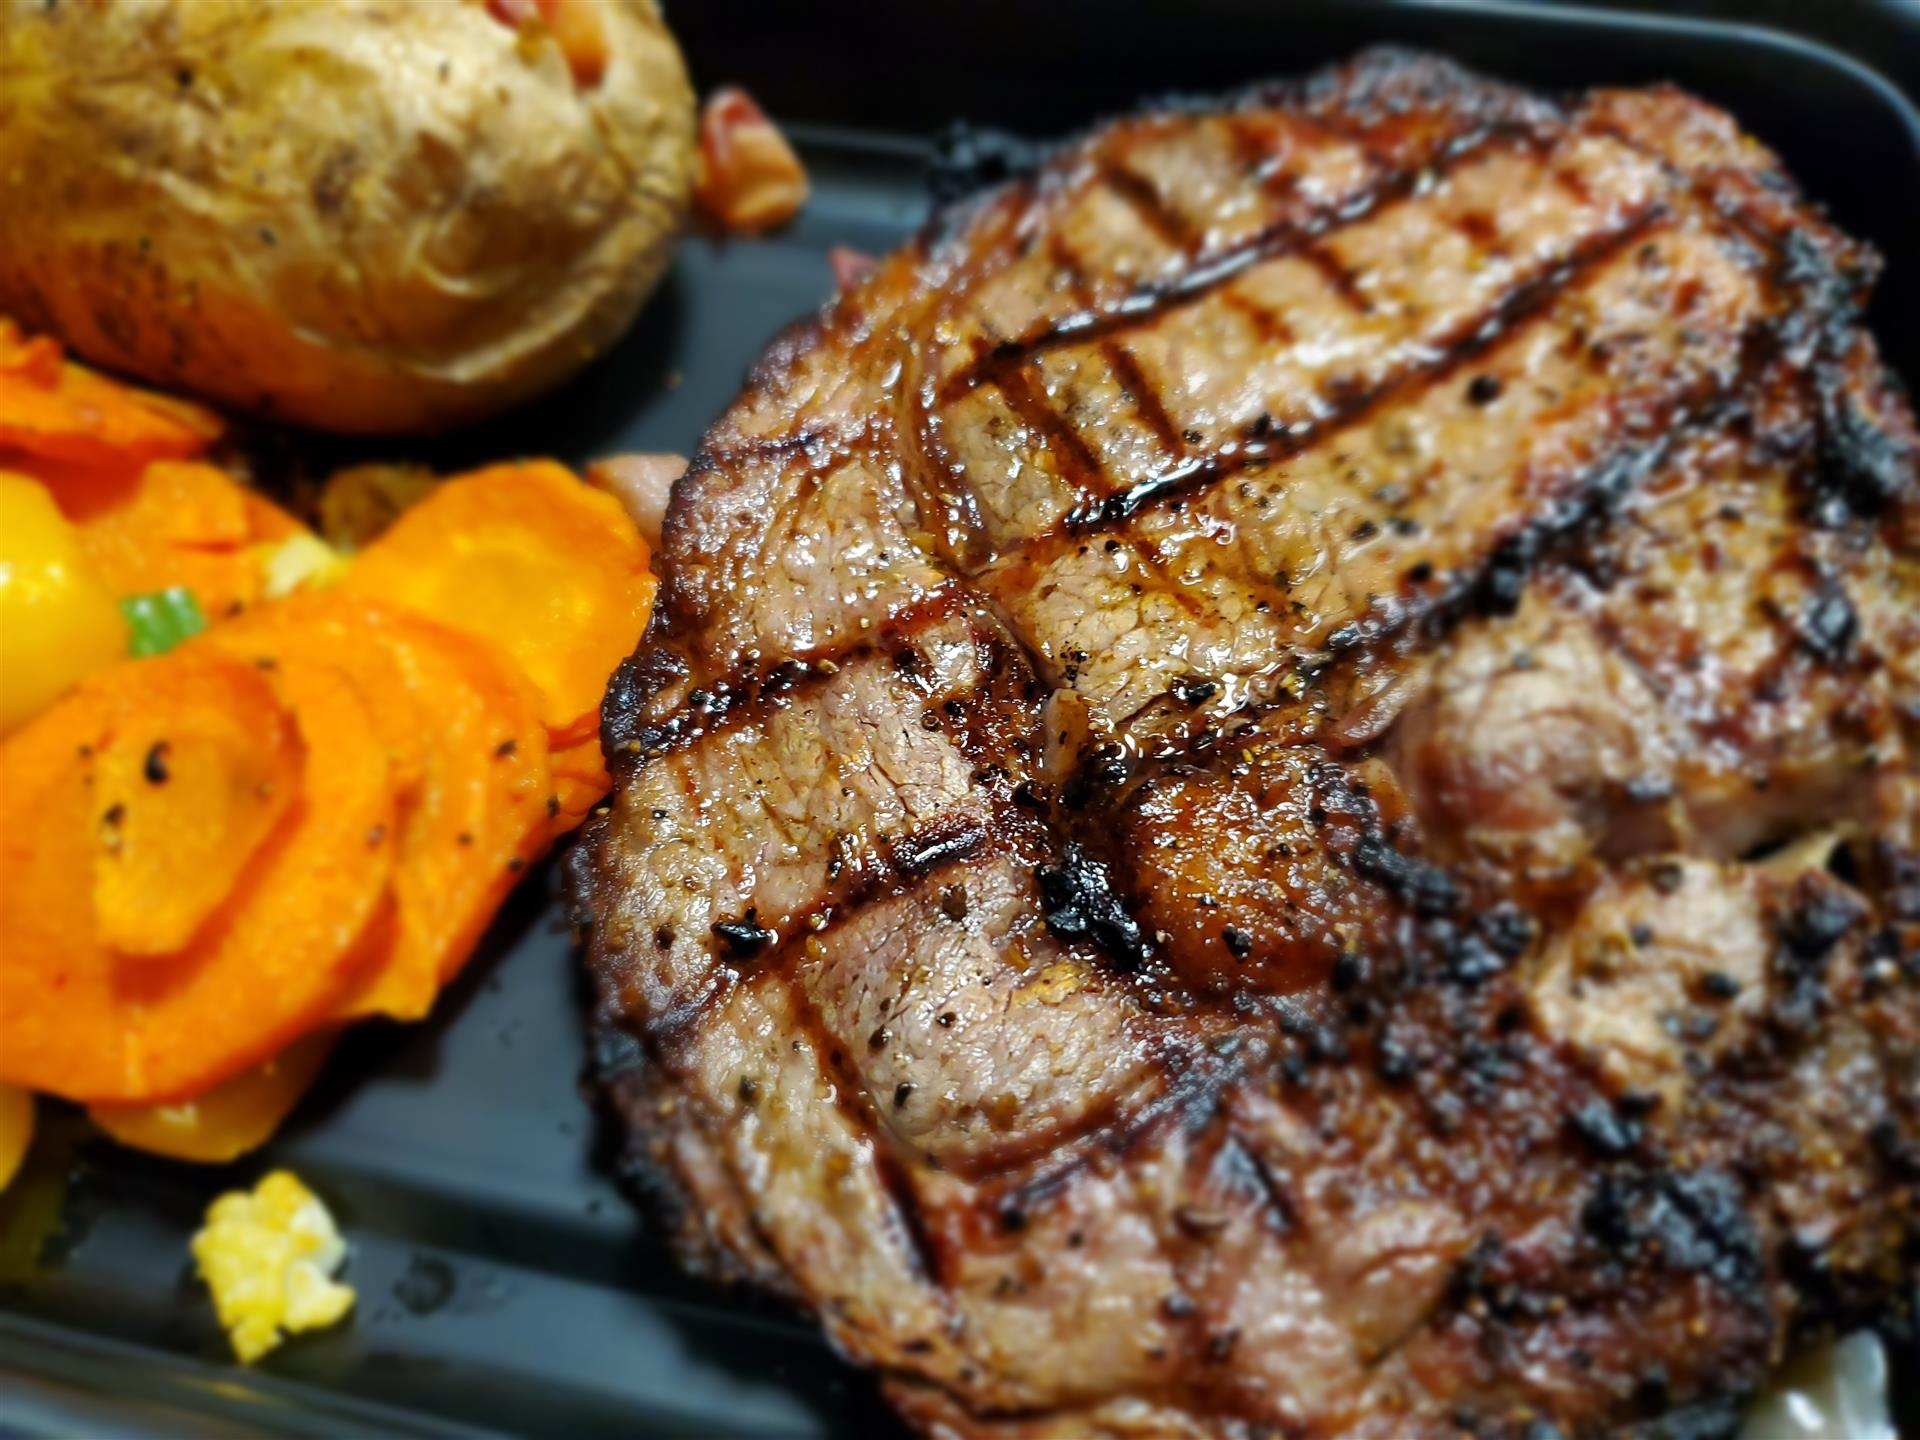 grilled steak with baked potato and roasted veggies